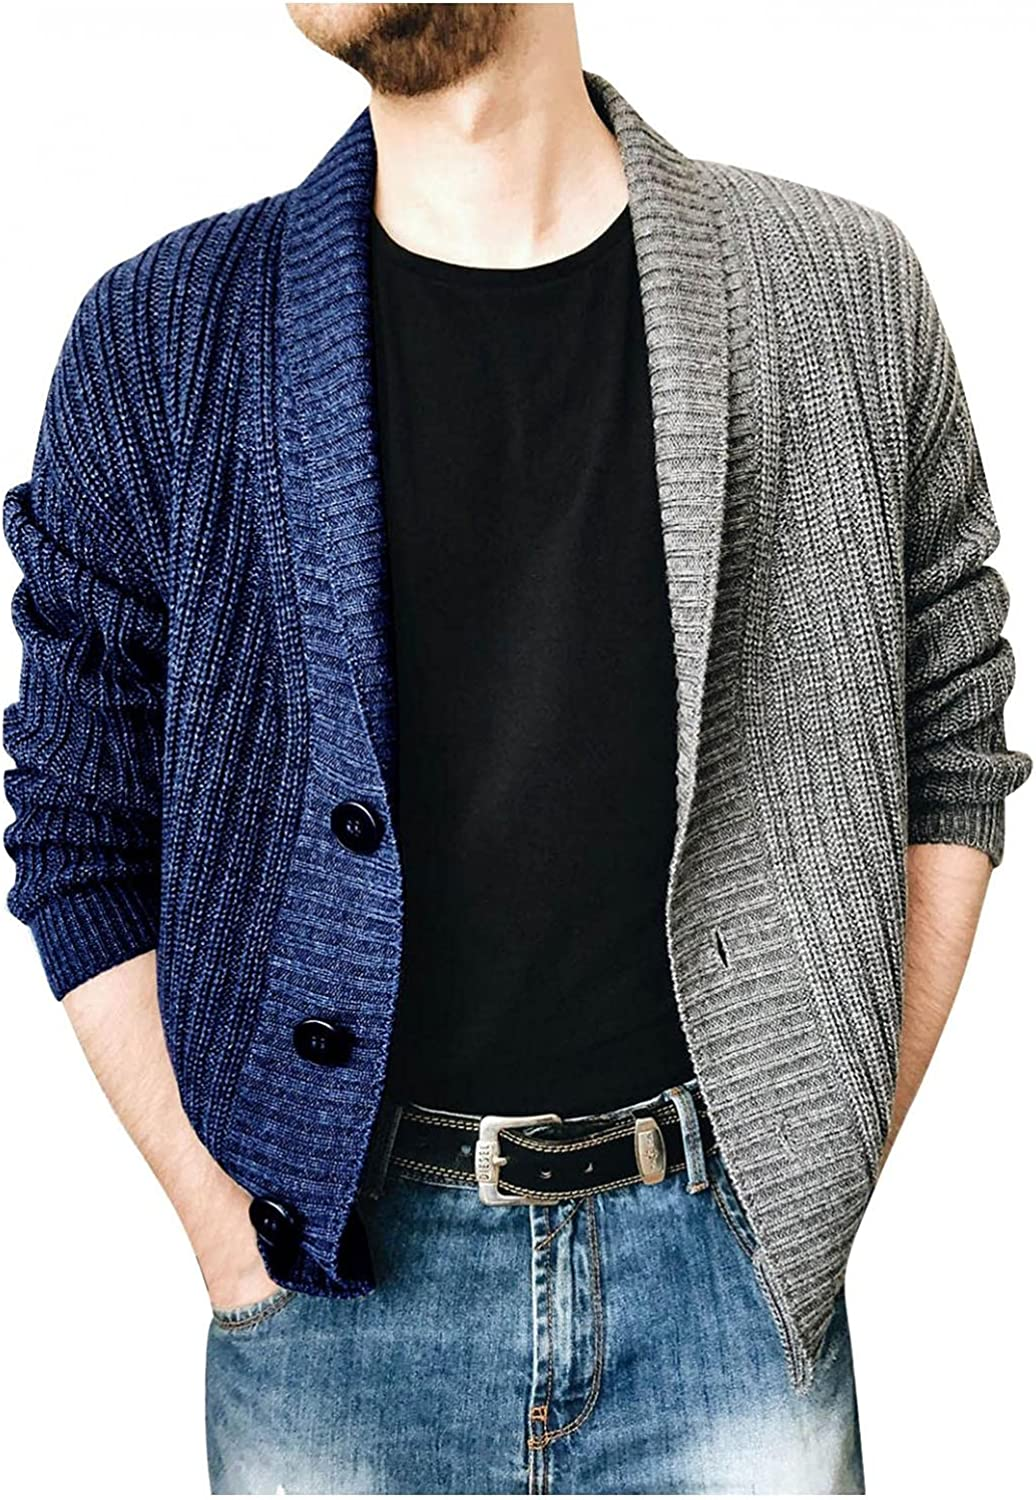 Men's Knitted Breasted Sweaters Autumn Patchwork Cardigan Fashion Outwear Casual Comfy Long Sleeve Button Down Sweater